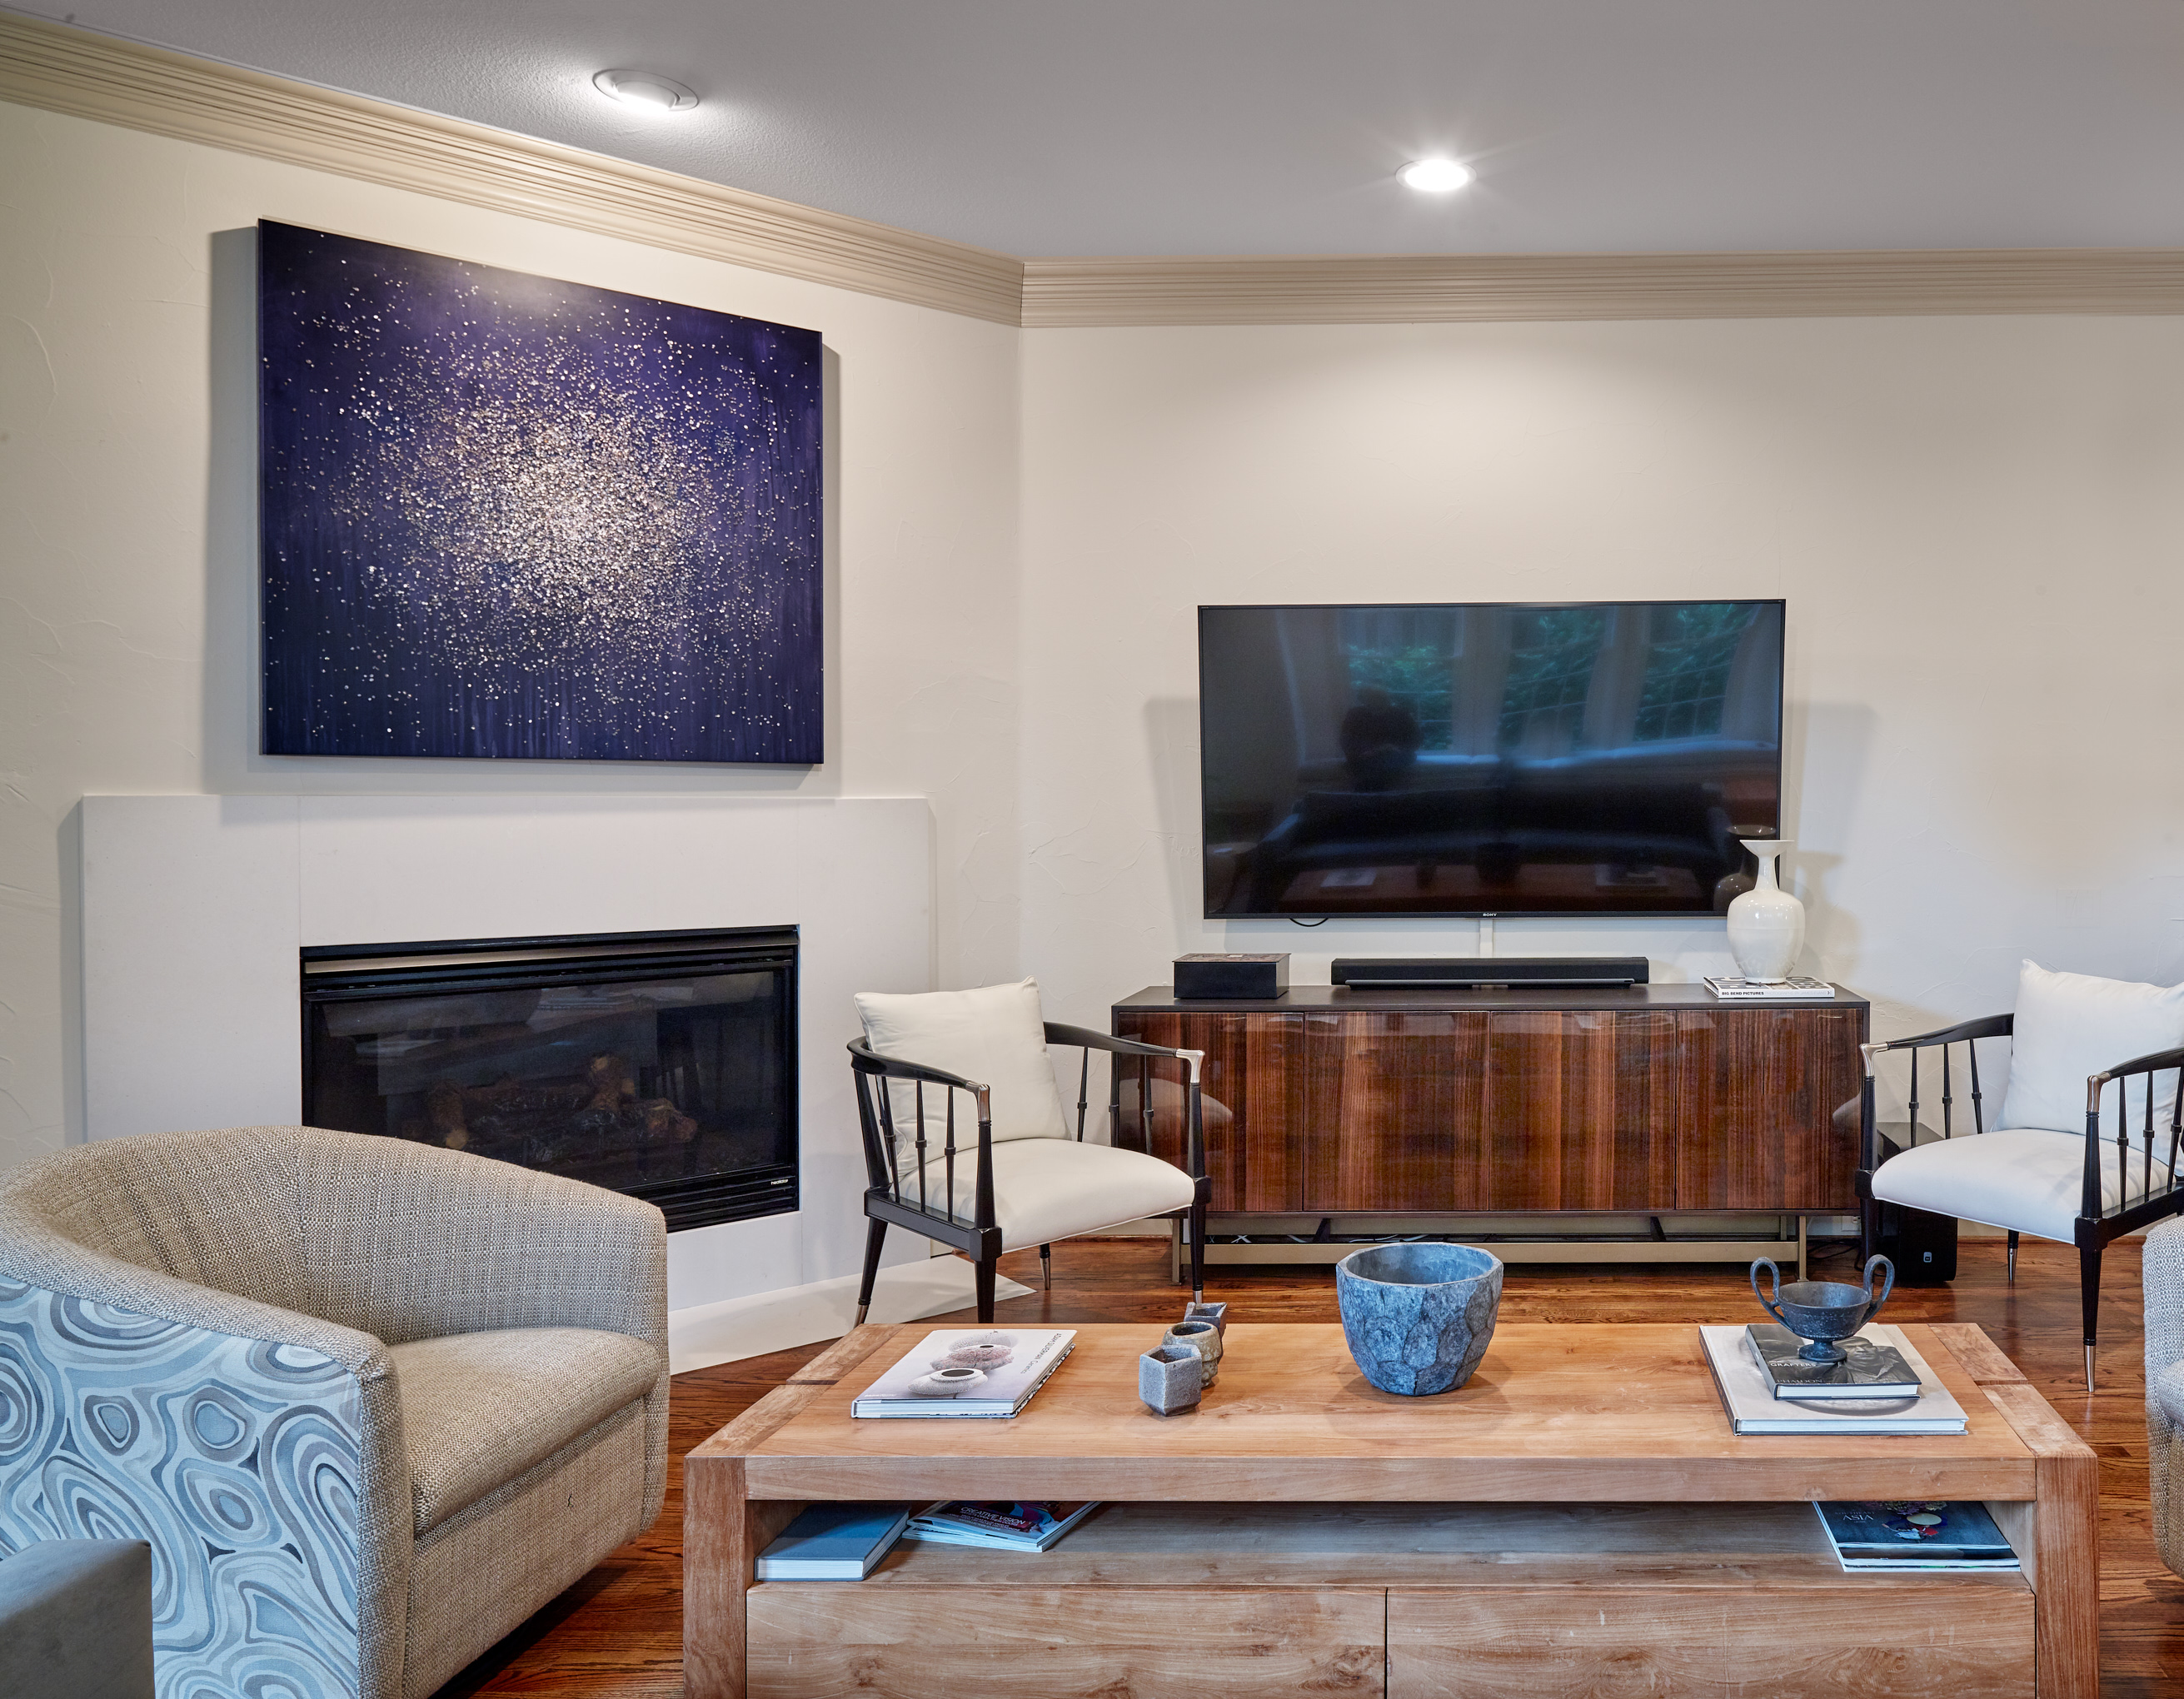 Blue art above contemporary fire place in living room with media console